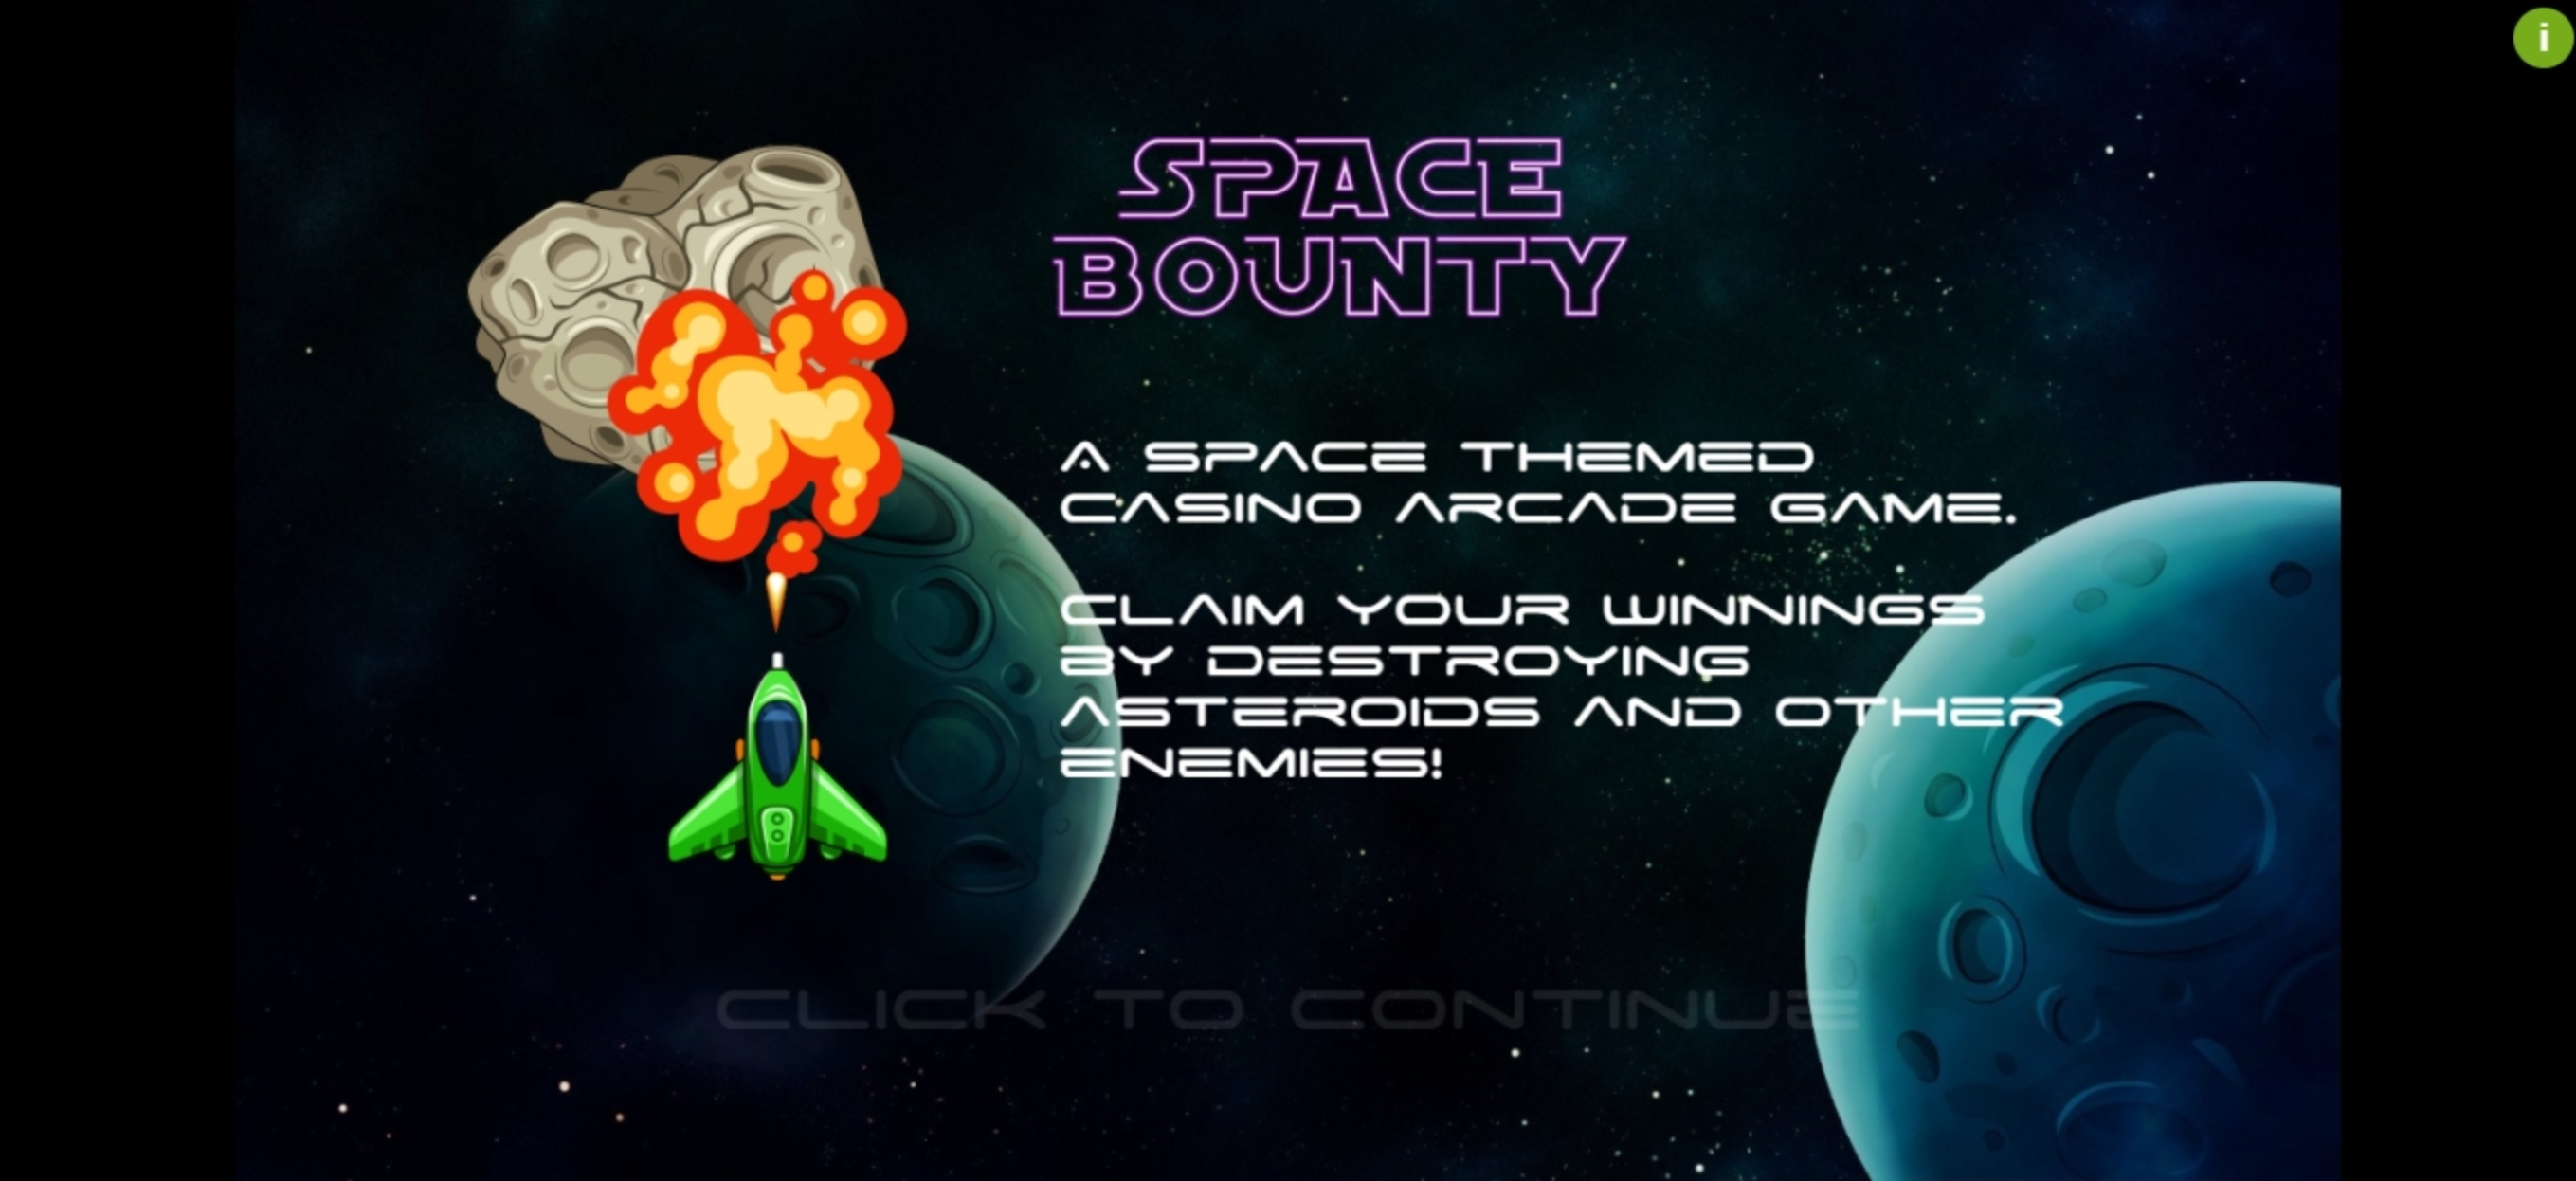 Play Space Bounty Free Casino Slot Game by Cubeia